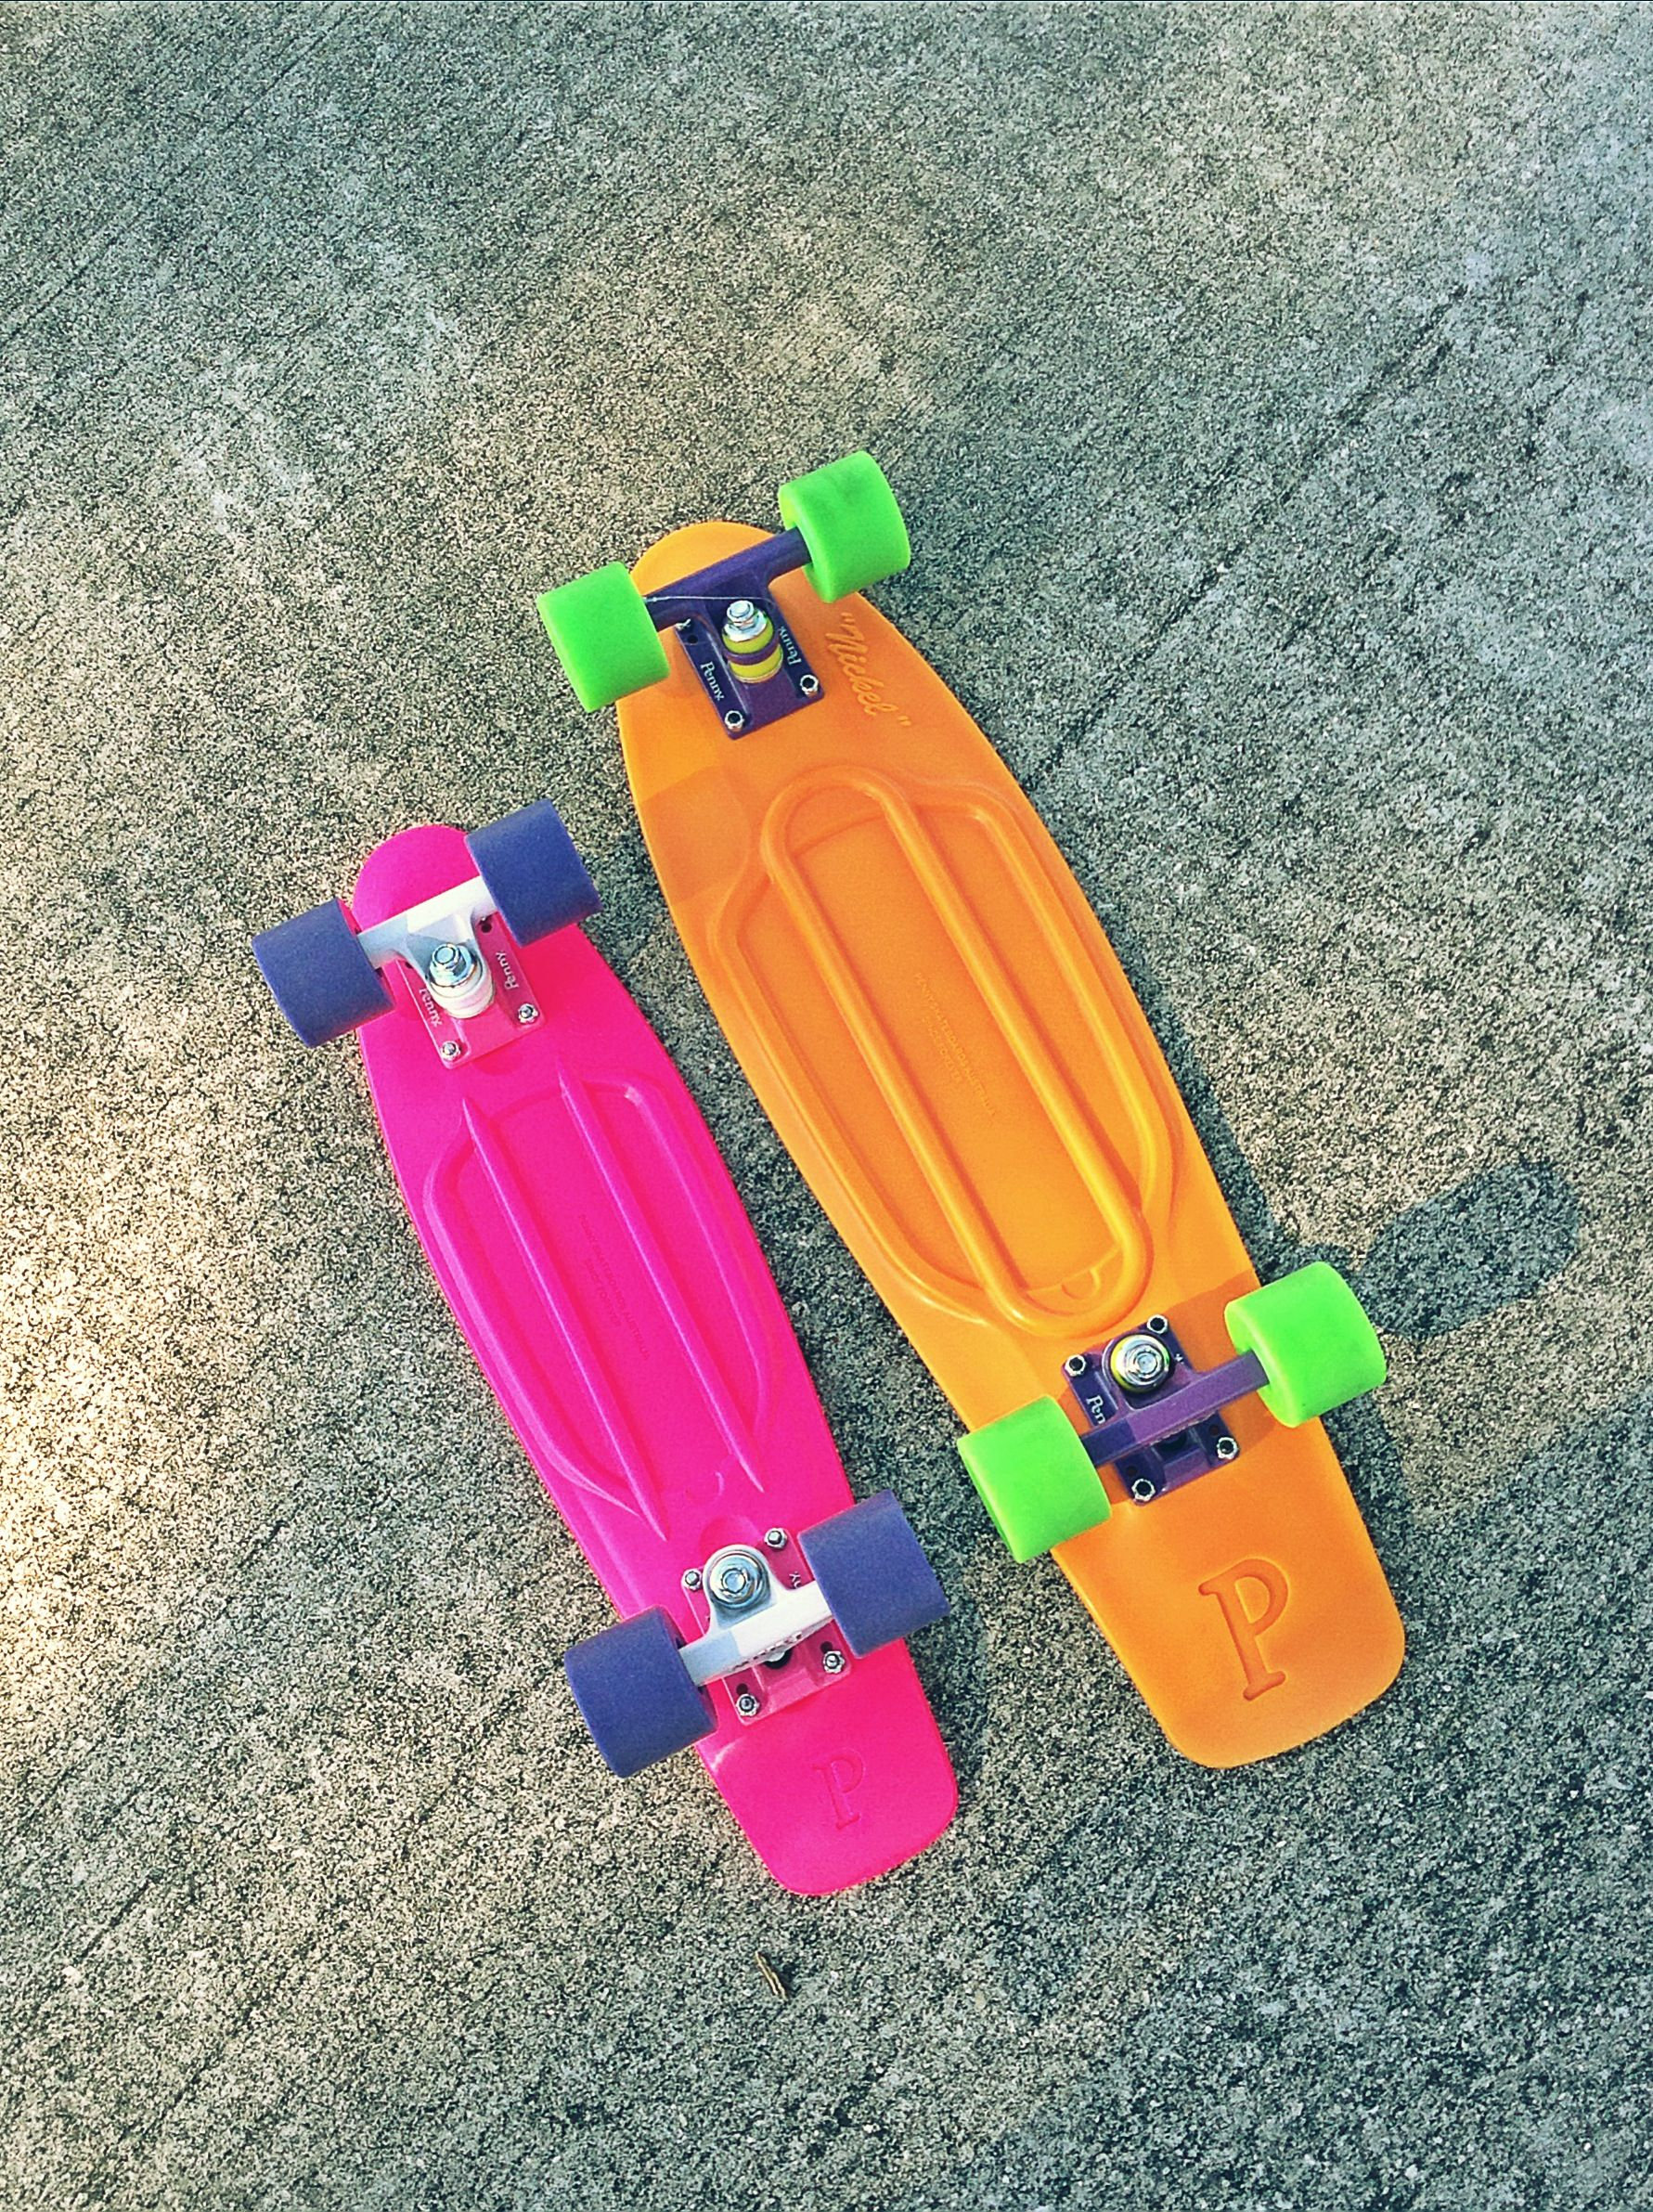 I would rather have the nickel u penny skateboard penny